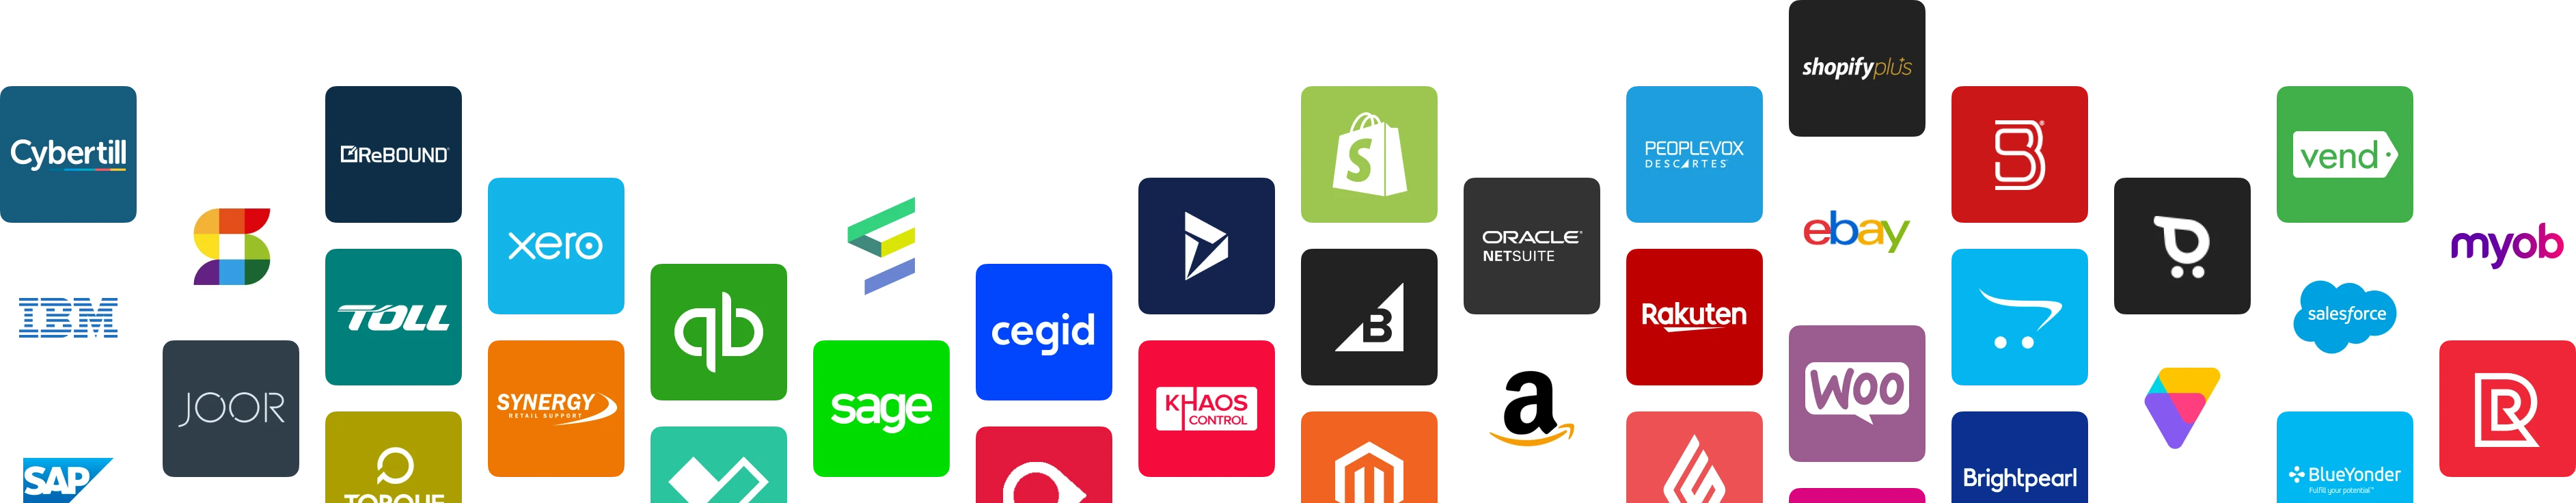 Integrations for your every need, connecting over 200 apps.